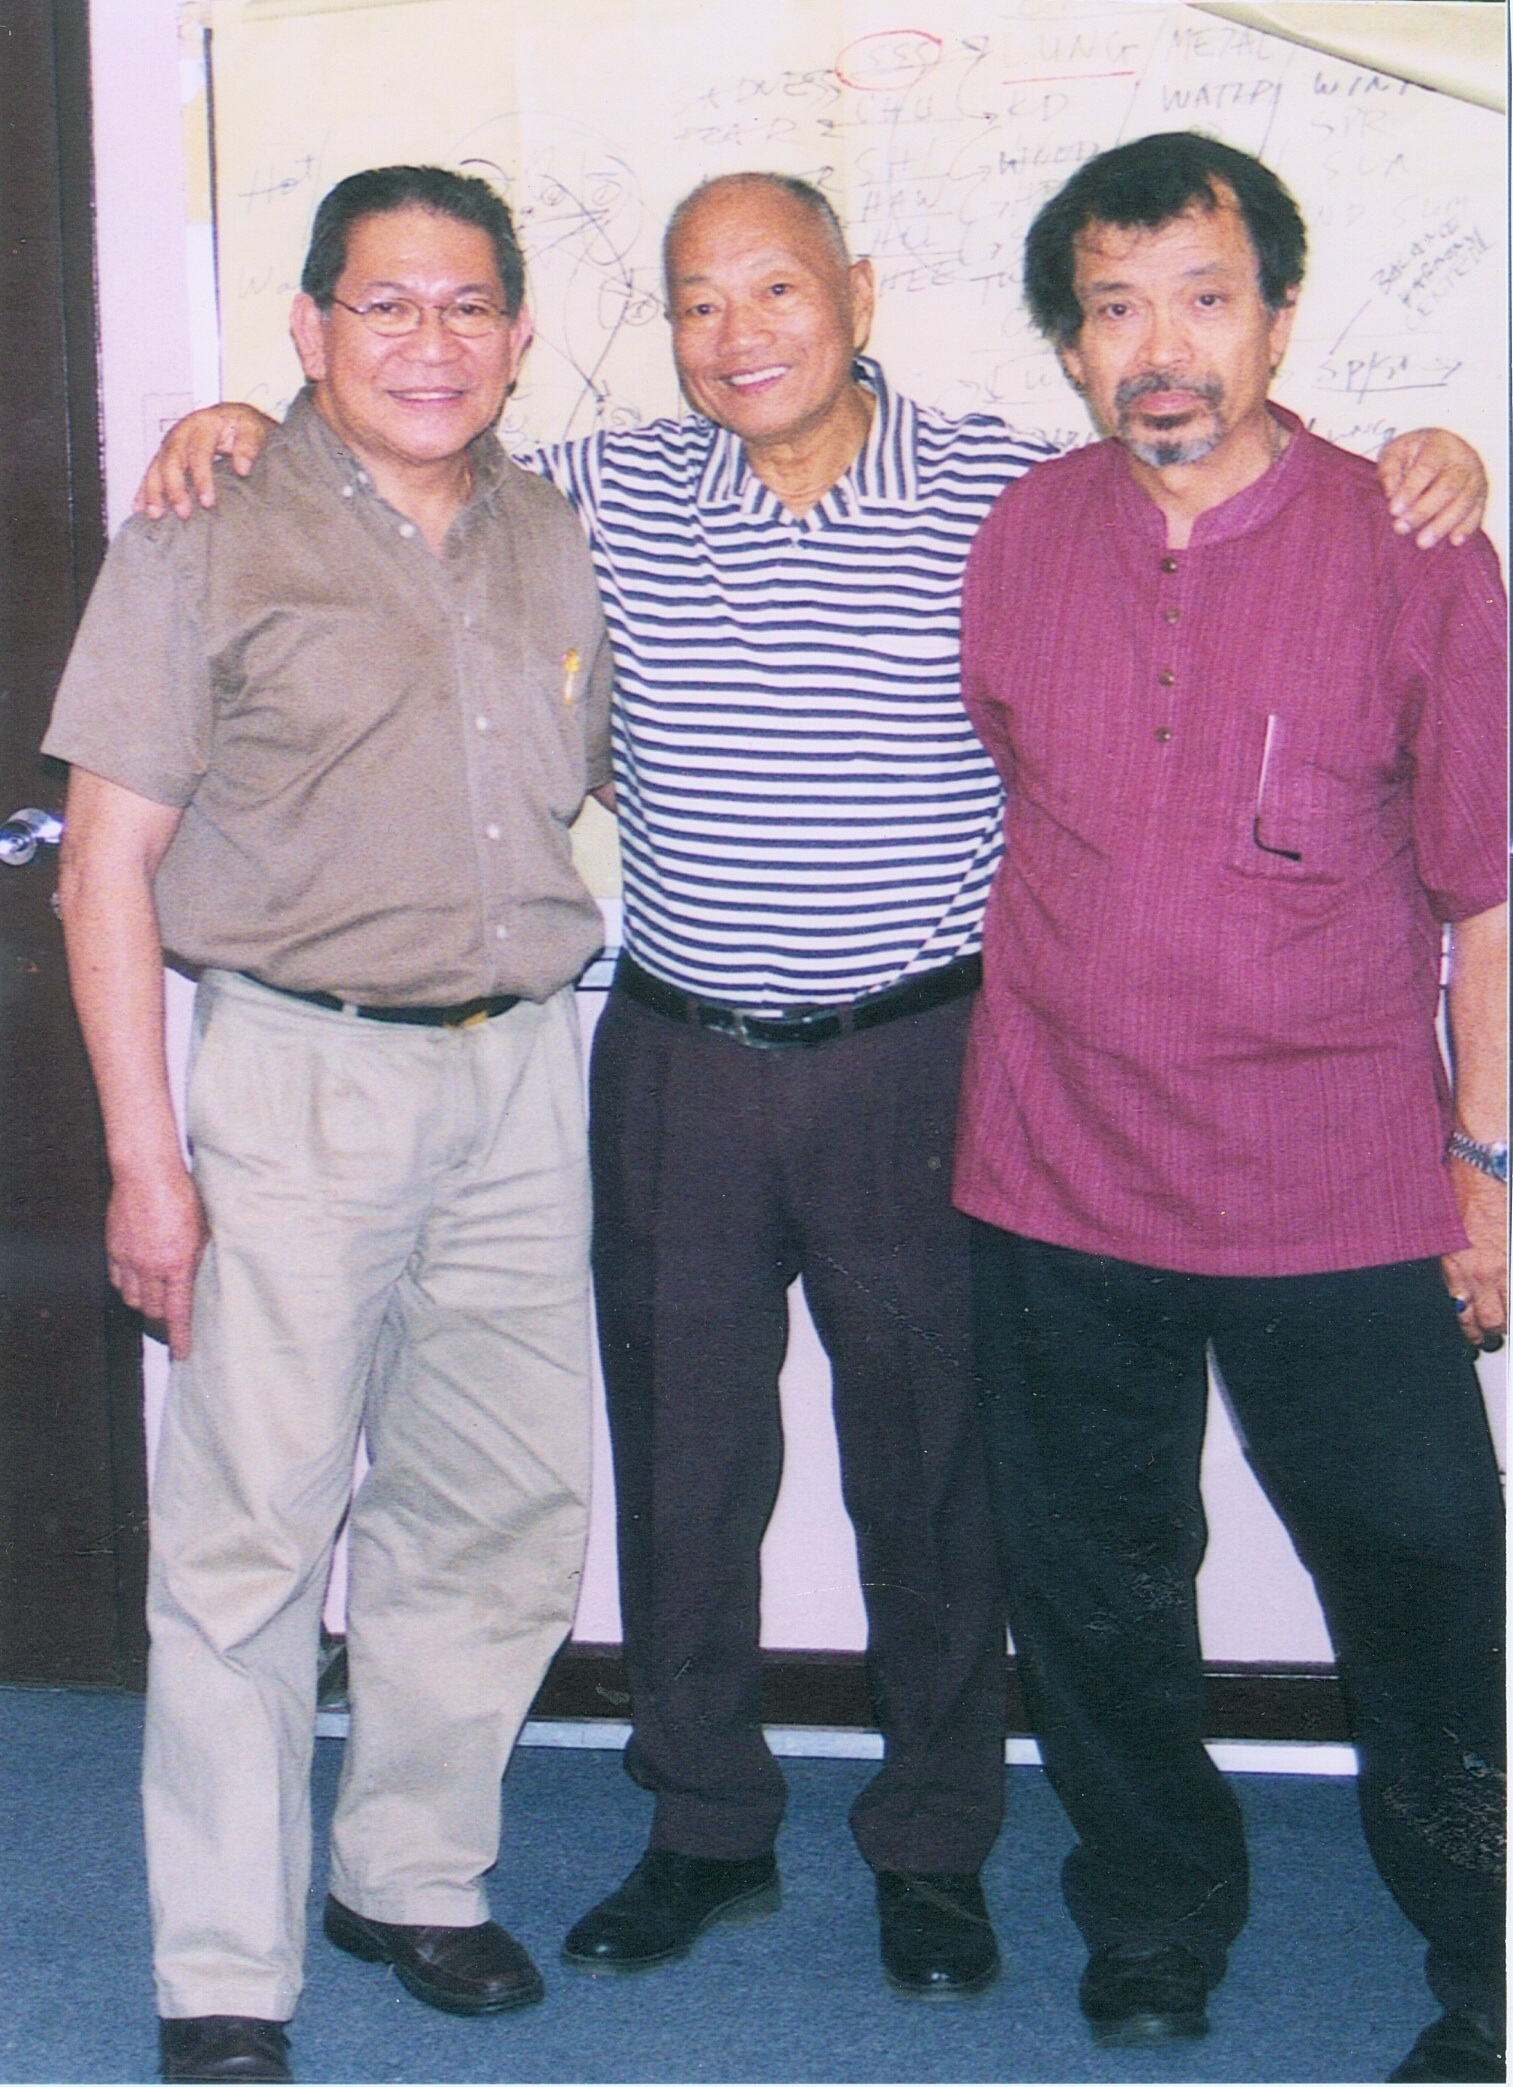 GM Johnny F. Chiuten with Dr. Jopet Laraya, martial arts master in HK, and Rene J. Navarro, 5 years ago, in the University of the Philippines.